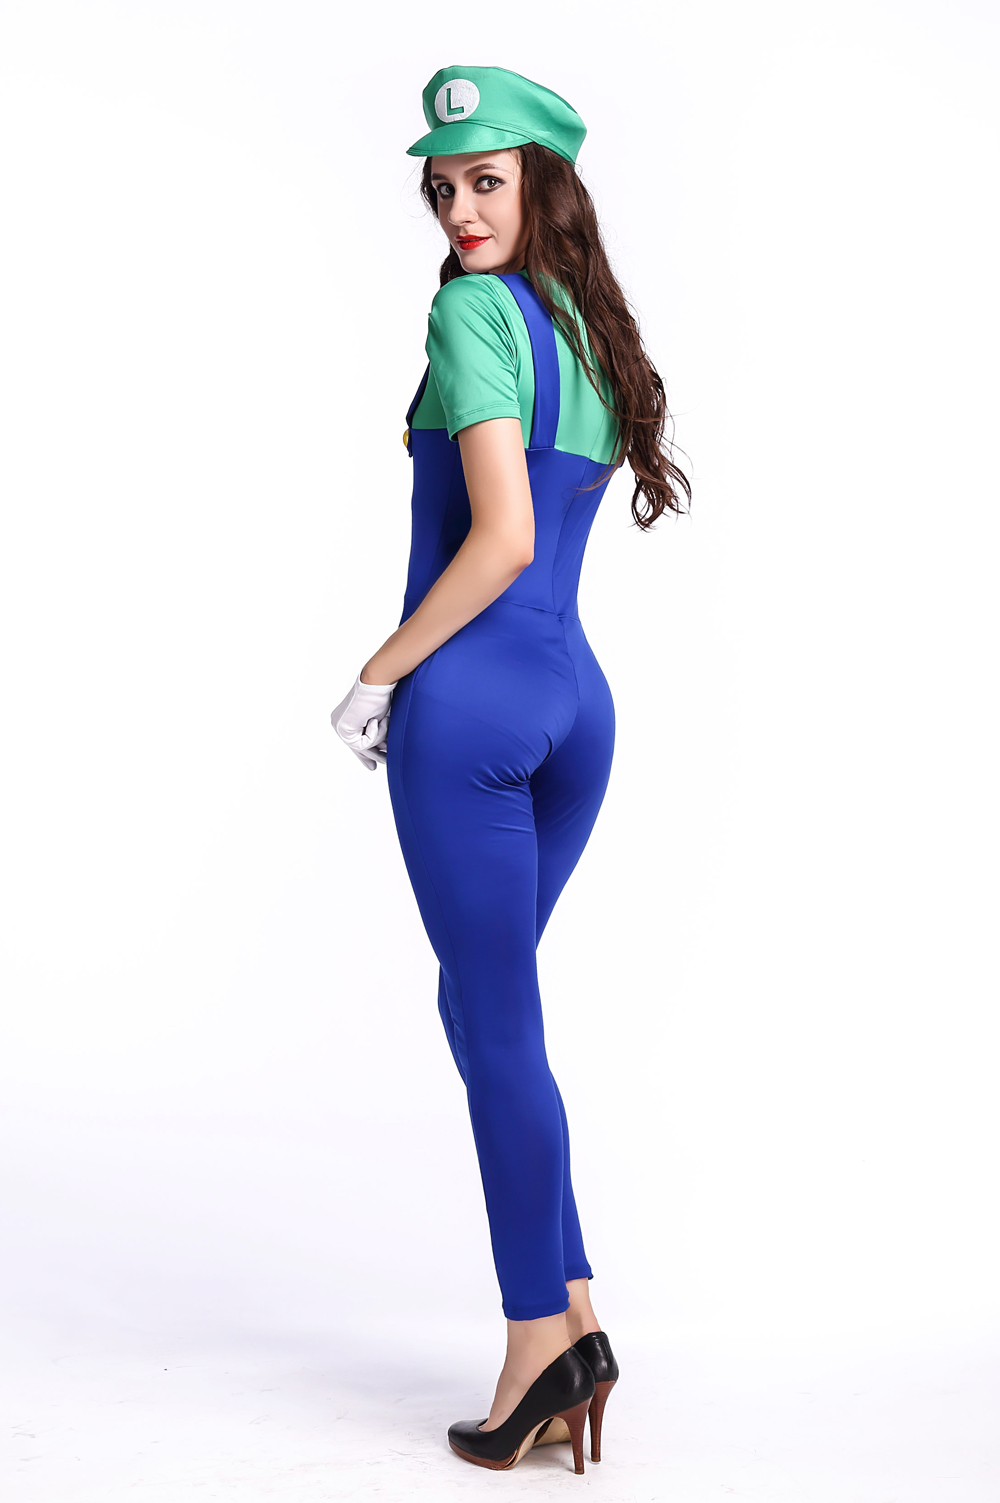 F1679-2 New cosplay women bodysuit costume,it comes with hat,bodysuit,gloves